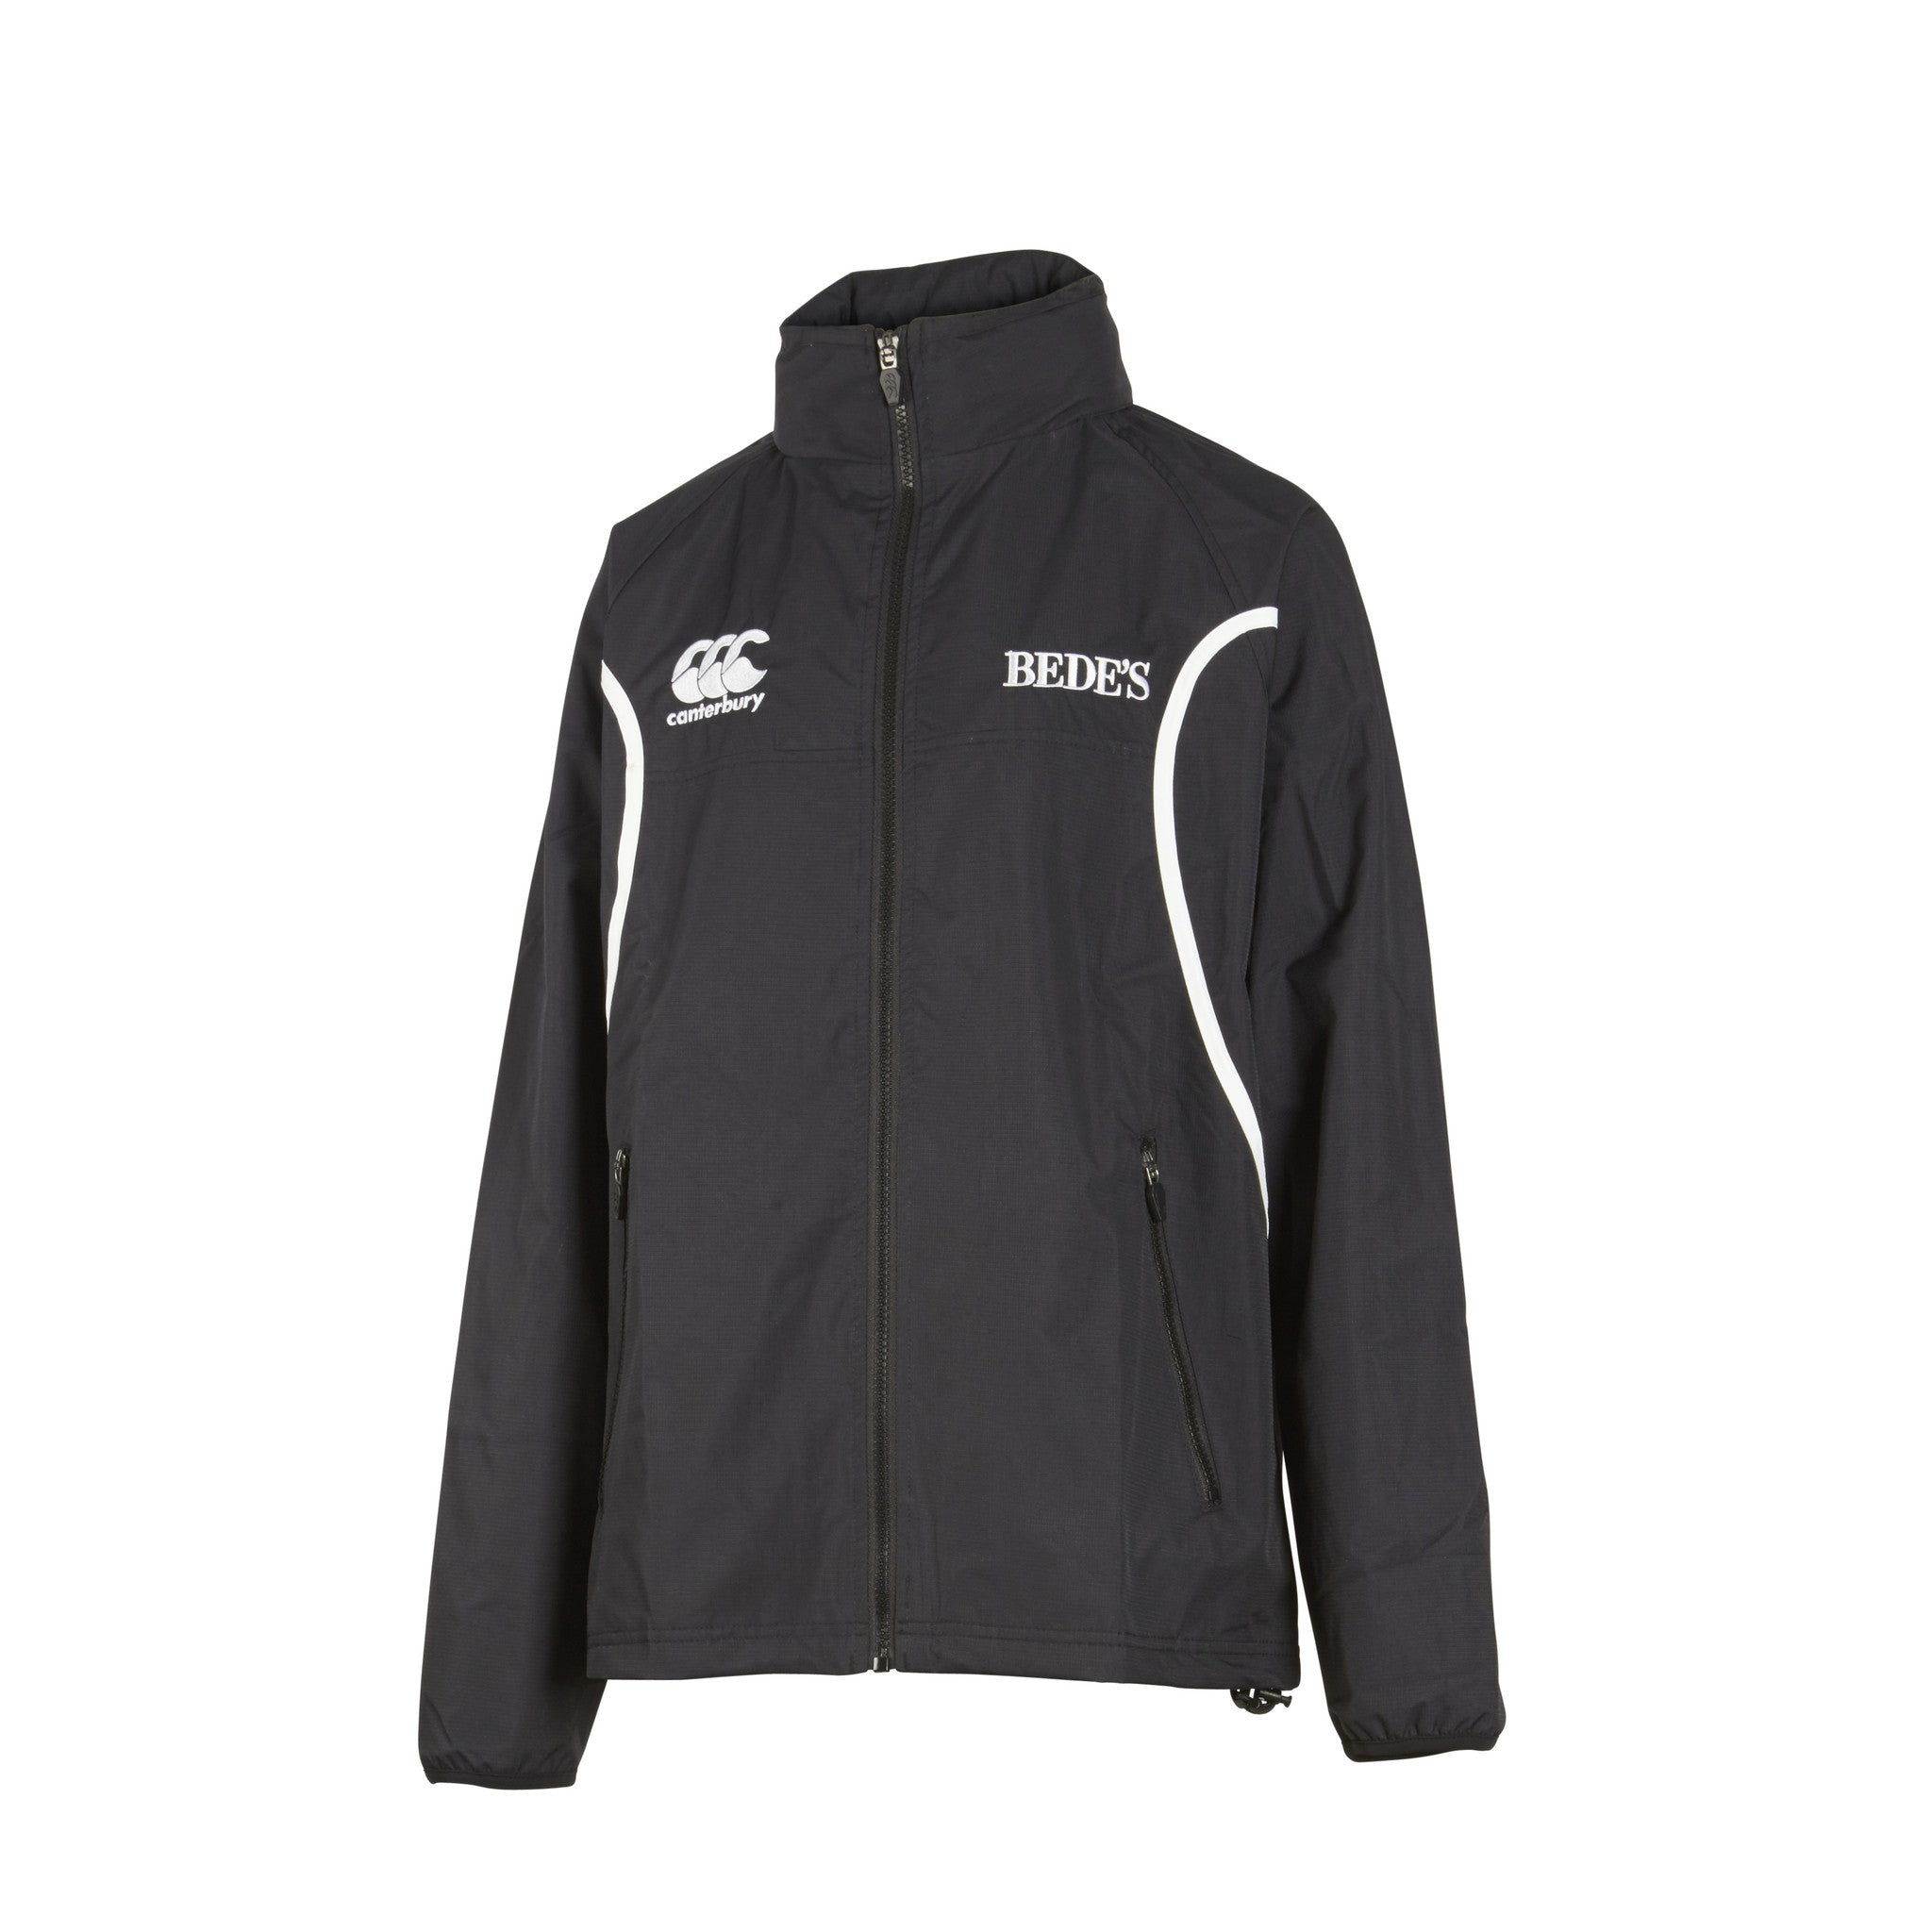 Senior Tracksuit Jacket